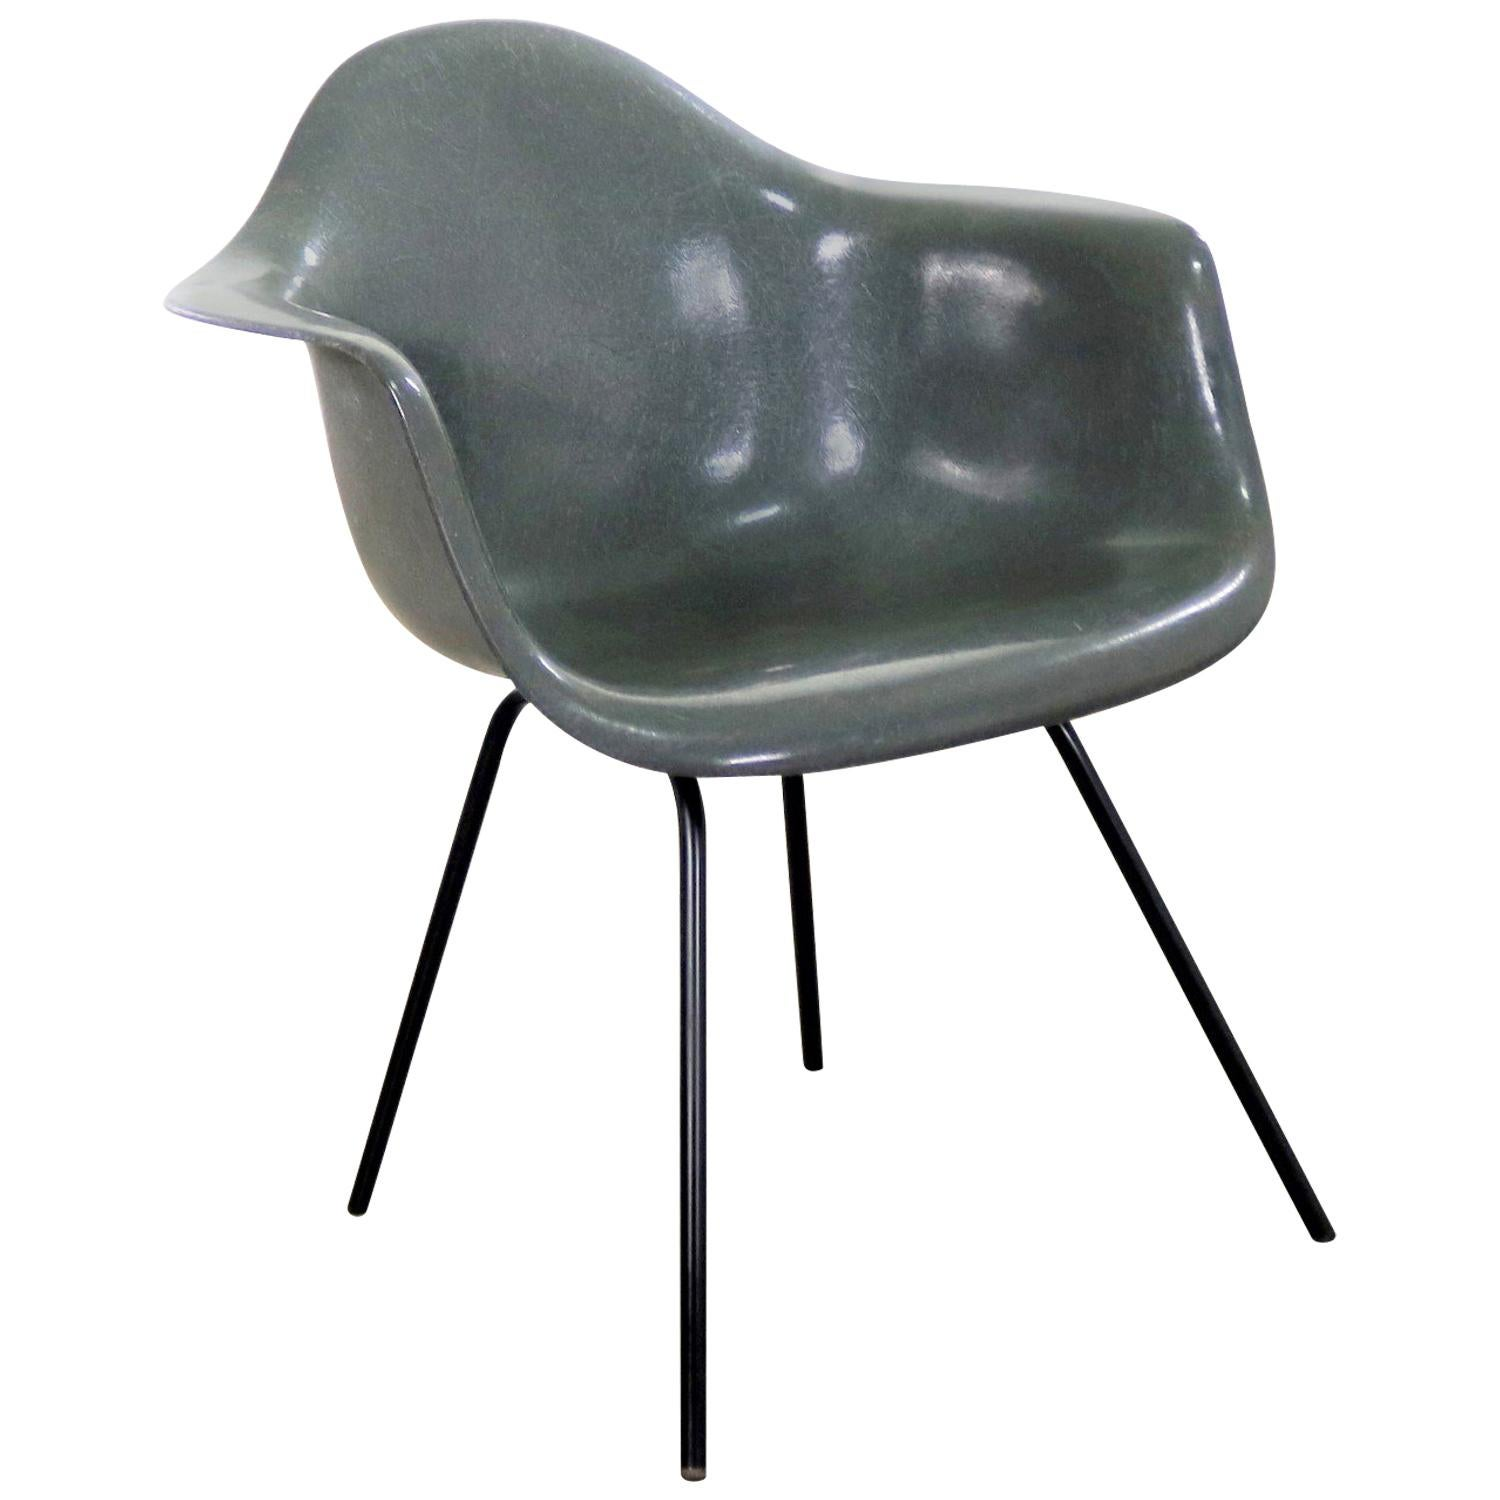 fiberglass shell chair burlap dining chairs elephant hide gray eames herman miller molded dax arm h b for sale